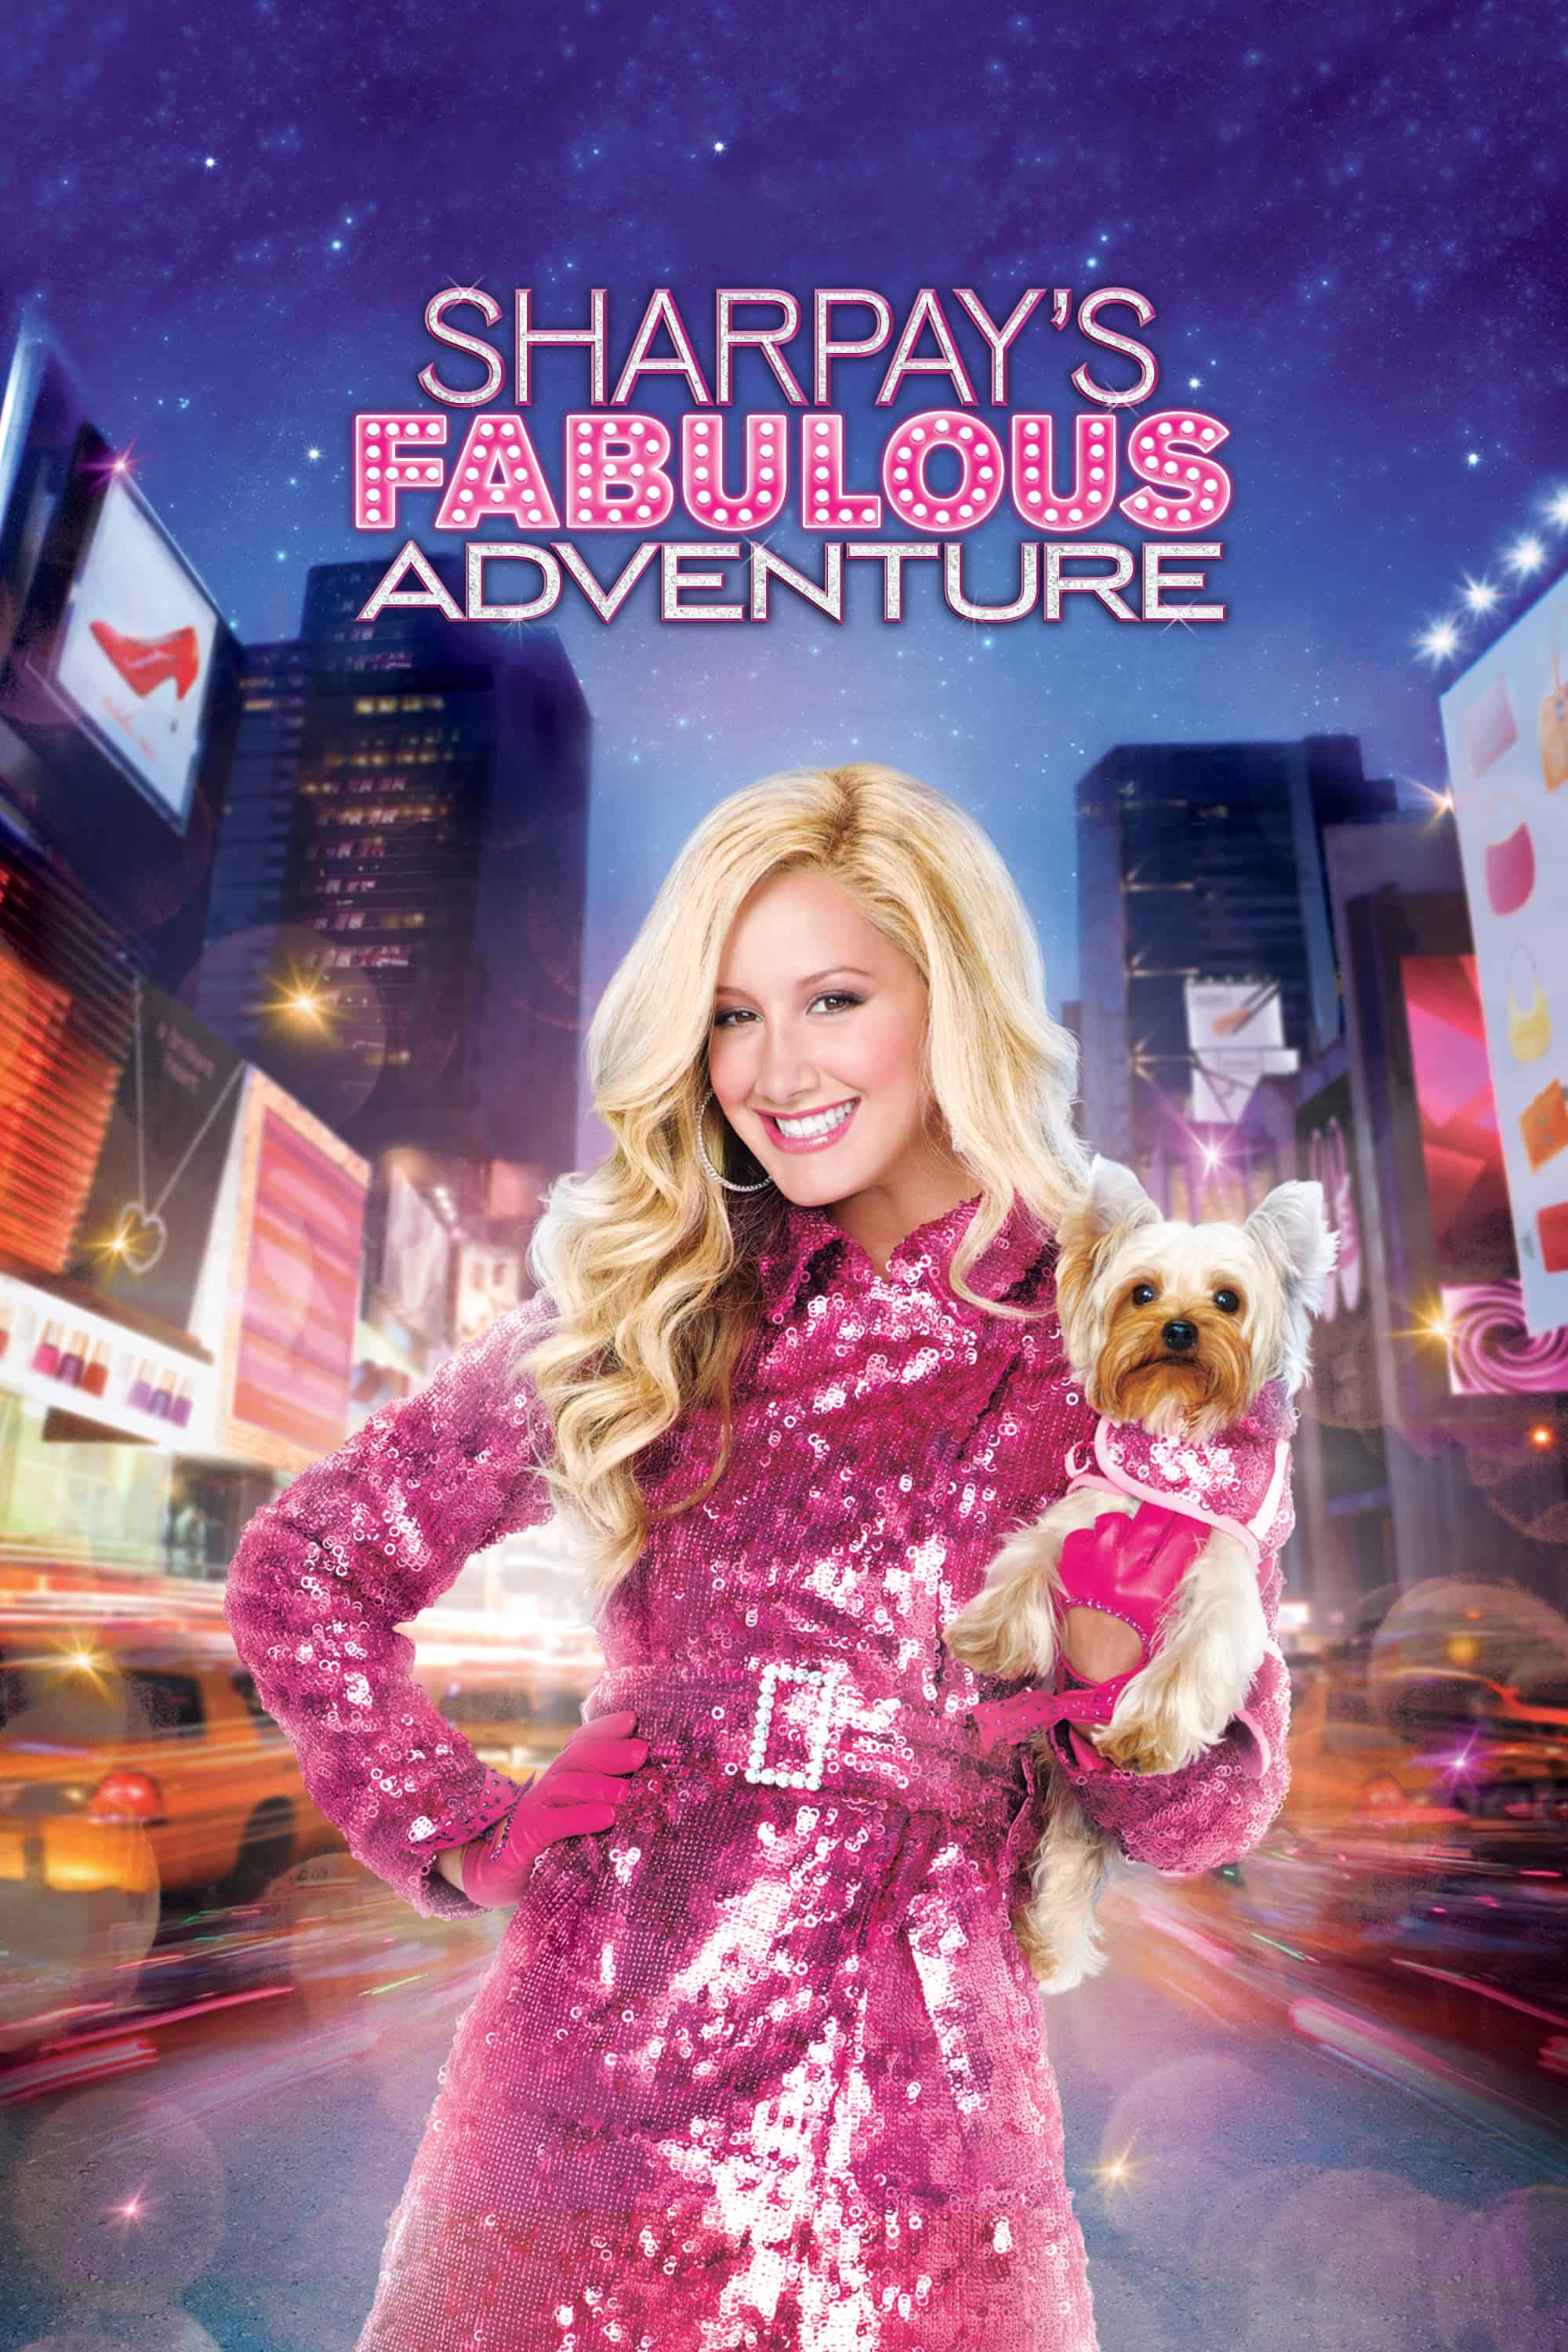 Sharpay's Fabulous Adventure, 2011